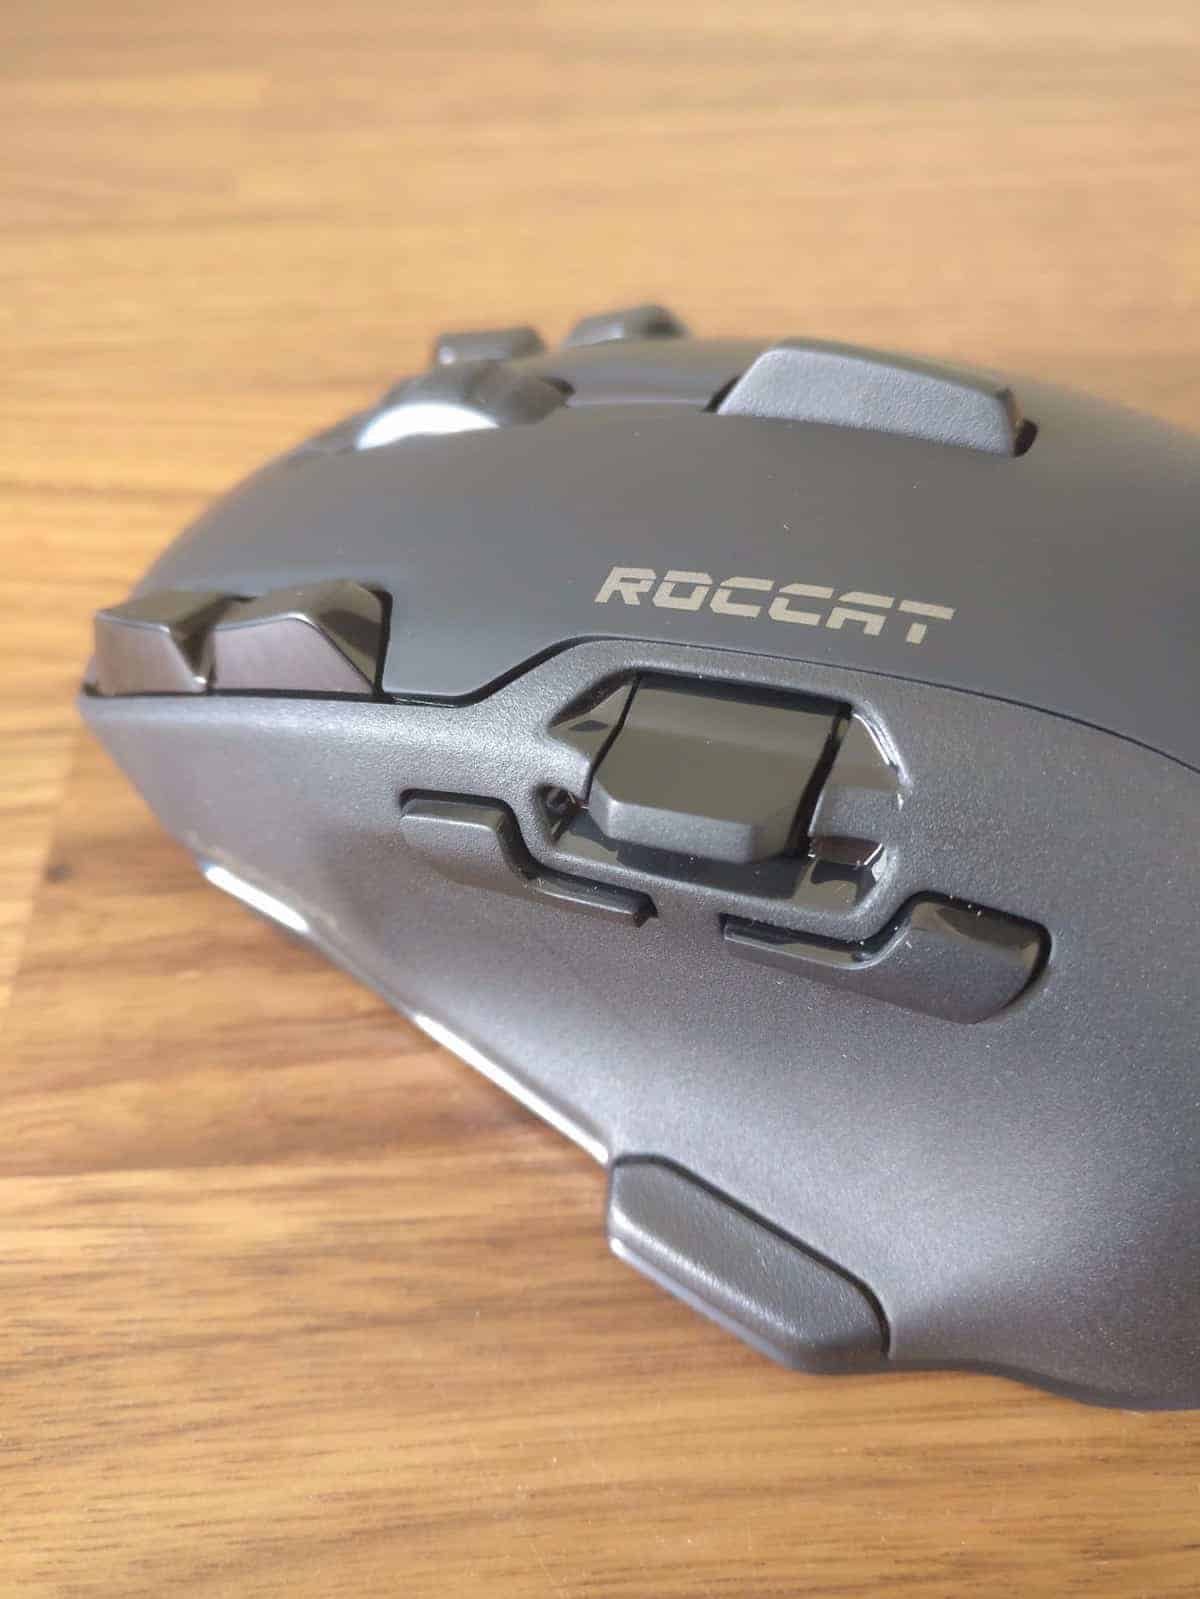 Roccat-Leadr-Photos21 Roccat Leadr Wireless Gaming Mouse Review